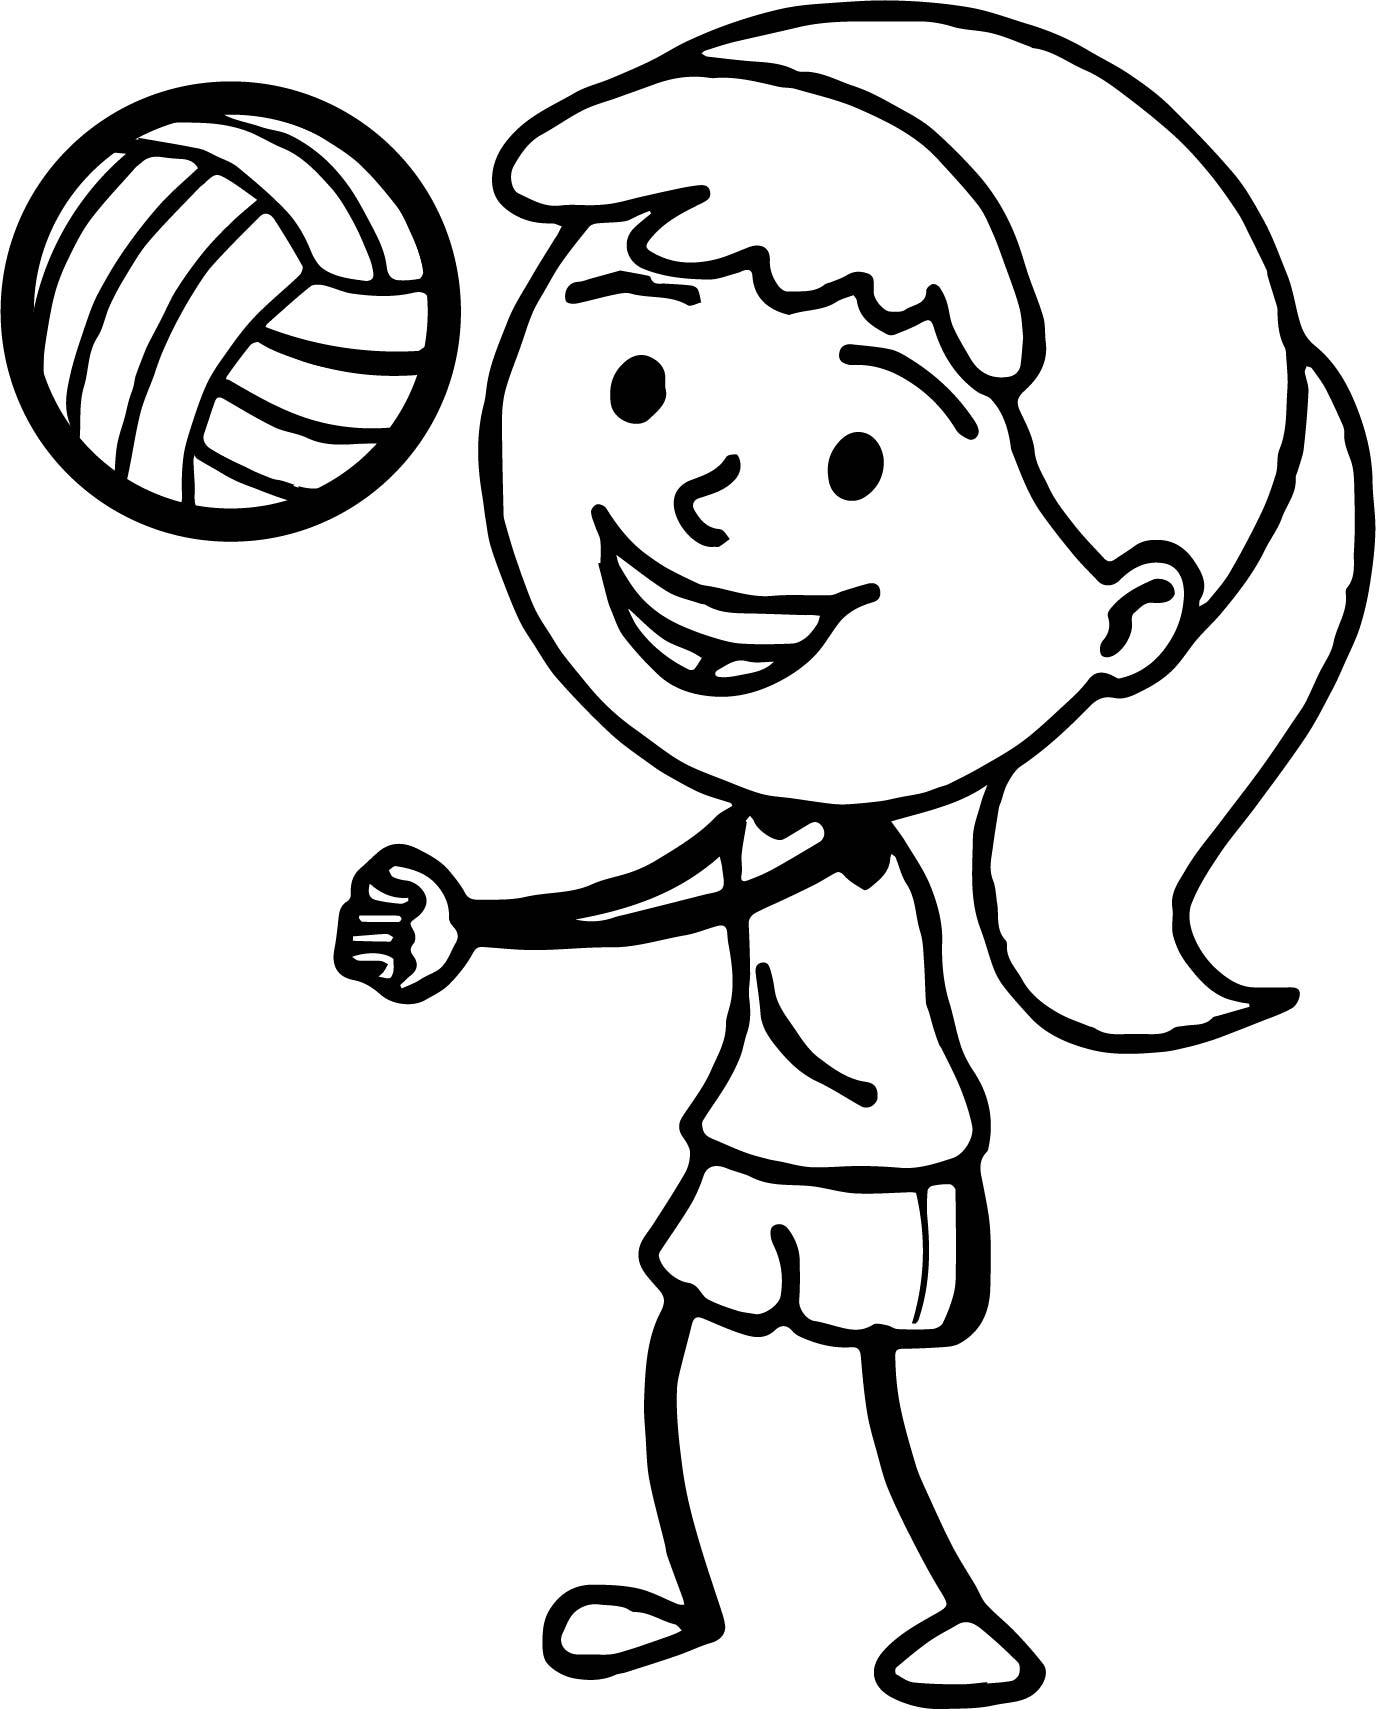 volleyball coloring pages printable free printable volleyball coloring pages for kids volleyball pages printable coloring